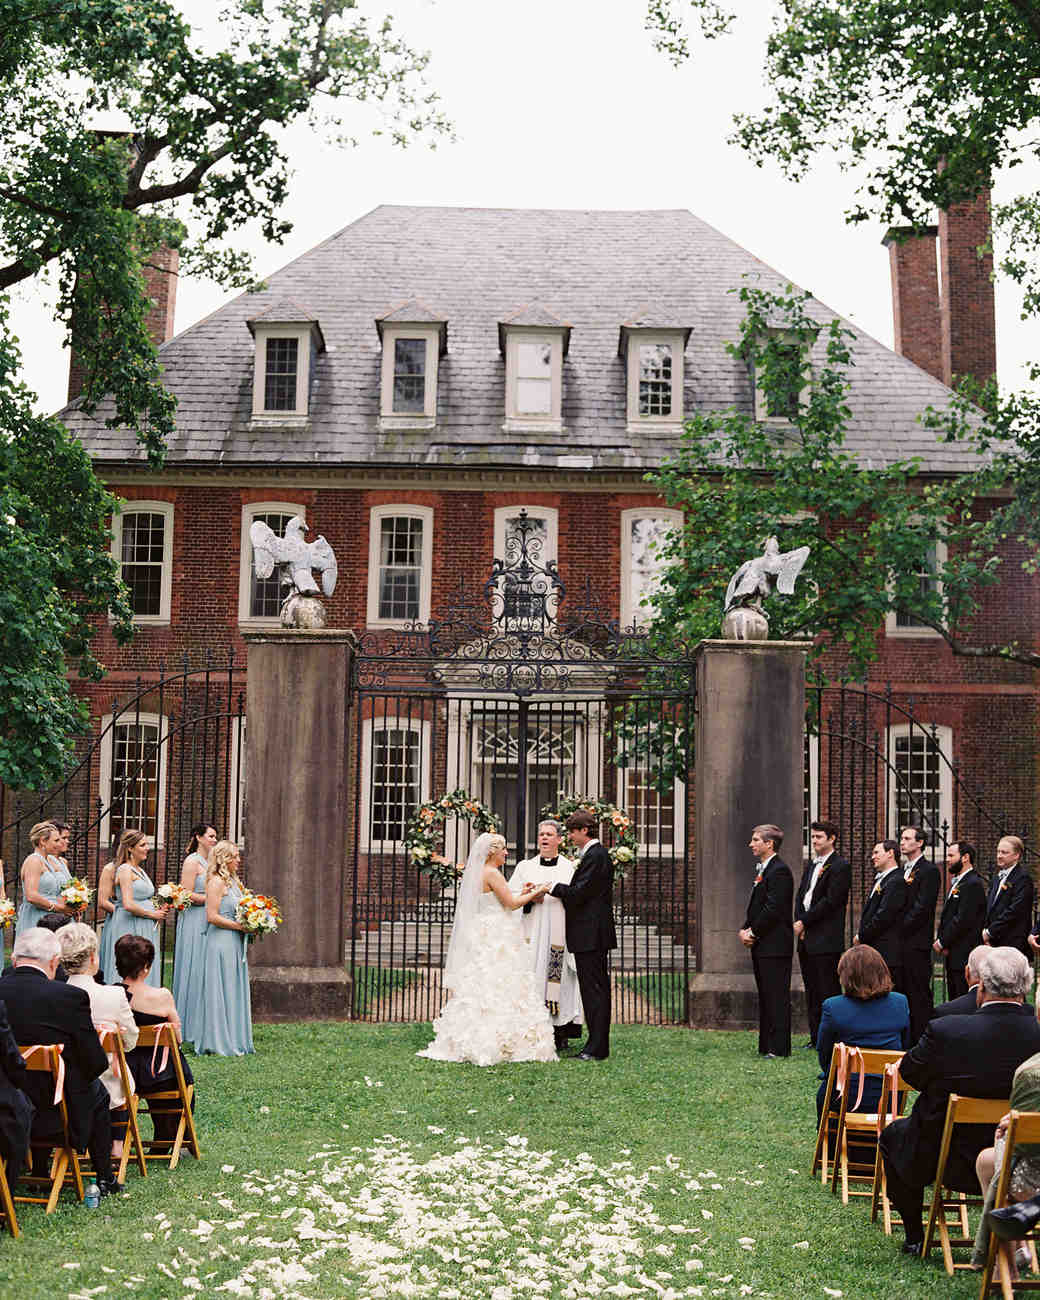 64 Top Wedding Planners Martha Stewart Weddings